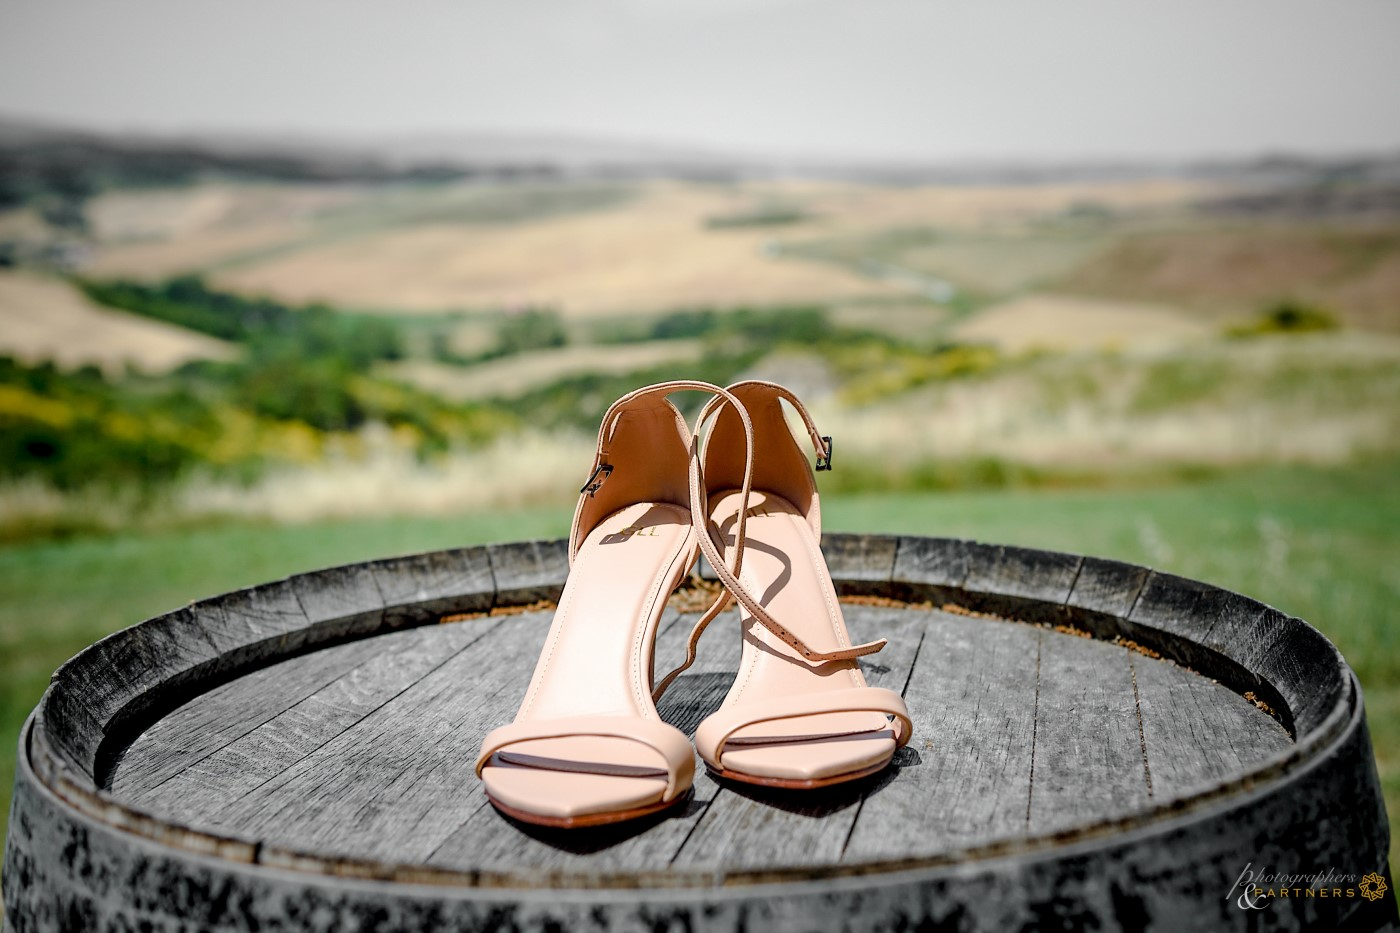 The bride's shoes with a beautiful background.